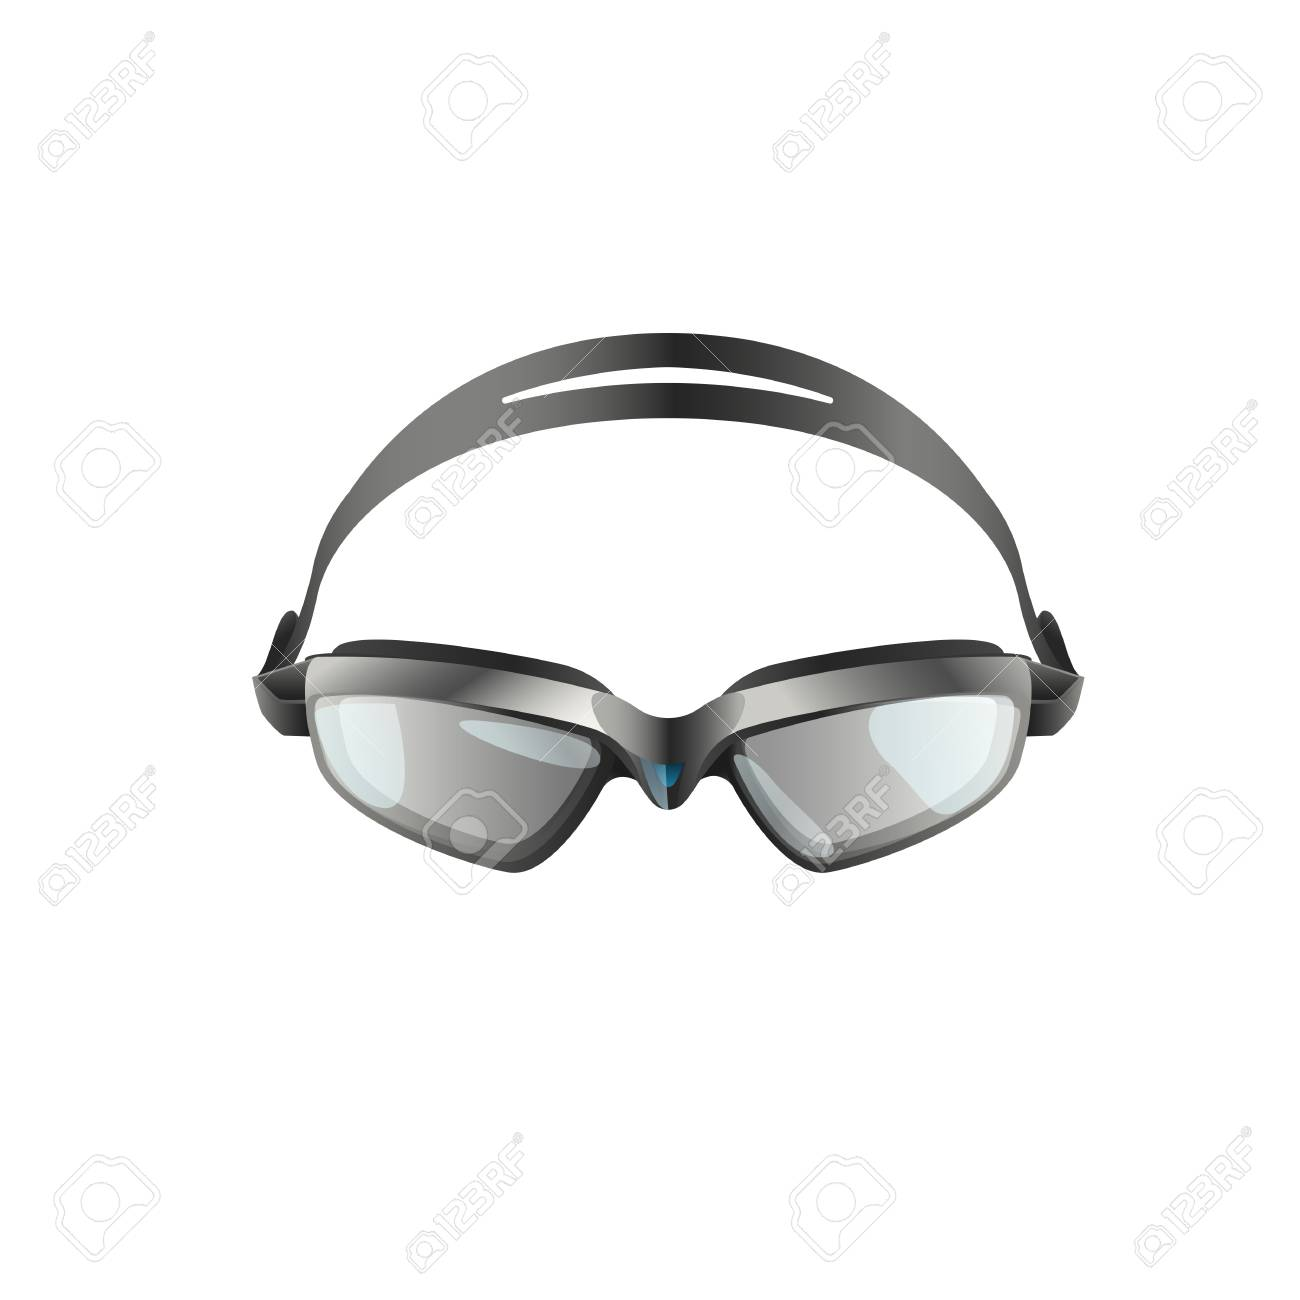 Swimming Goggles Flat Icon. Swimming Pool, Professional Sport ...